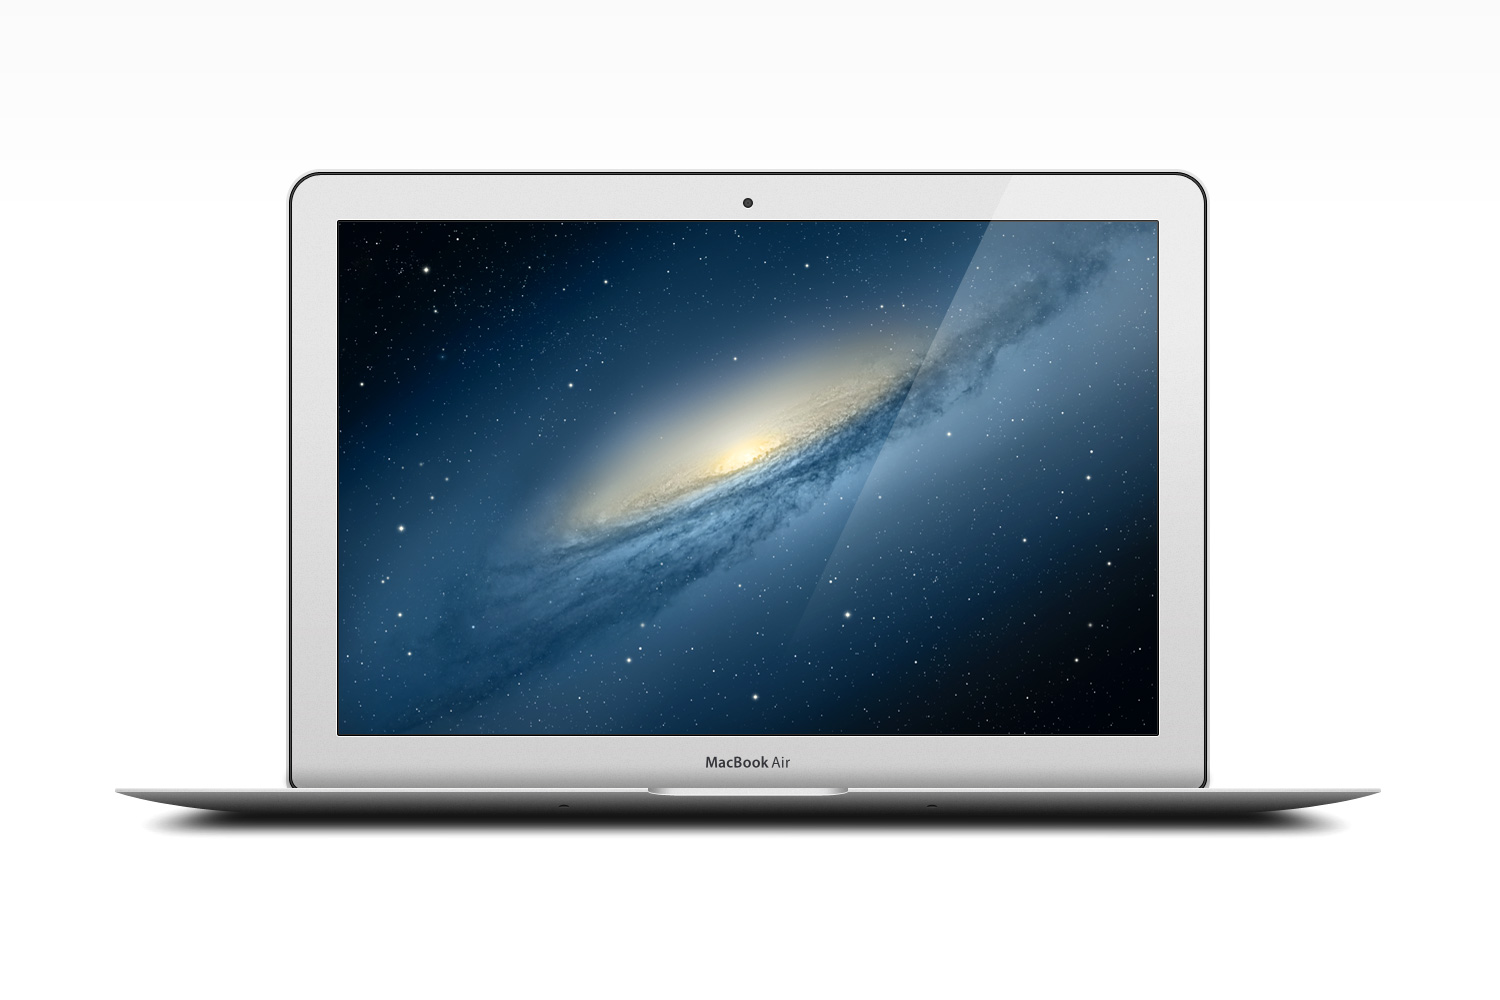 14 MacBook Air PSD Images